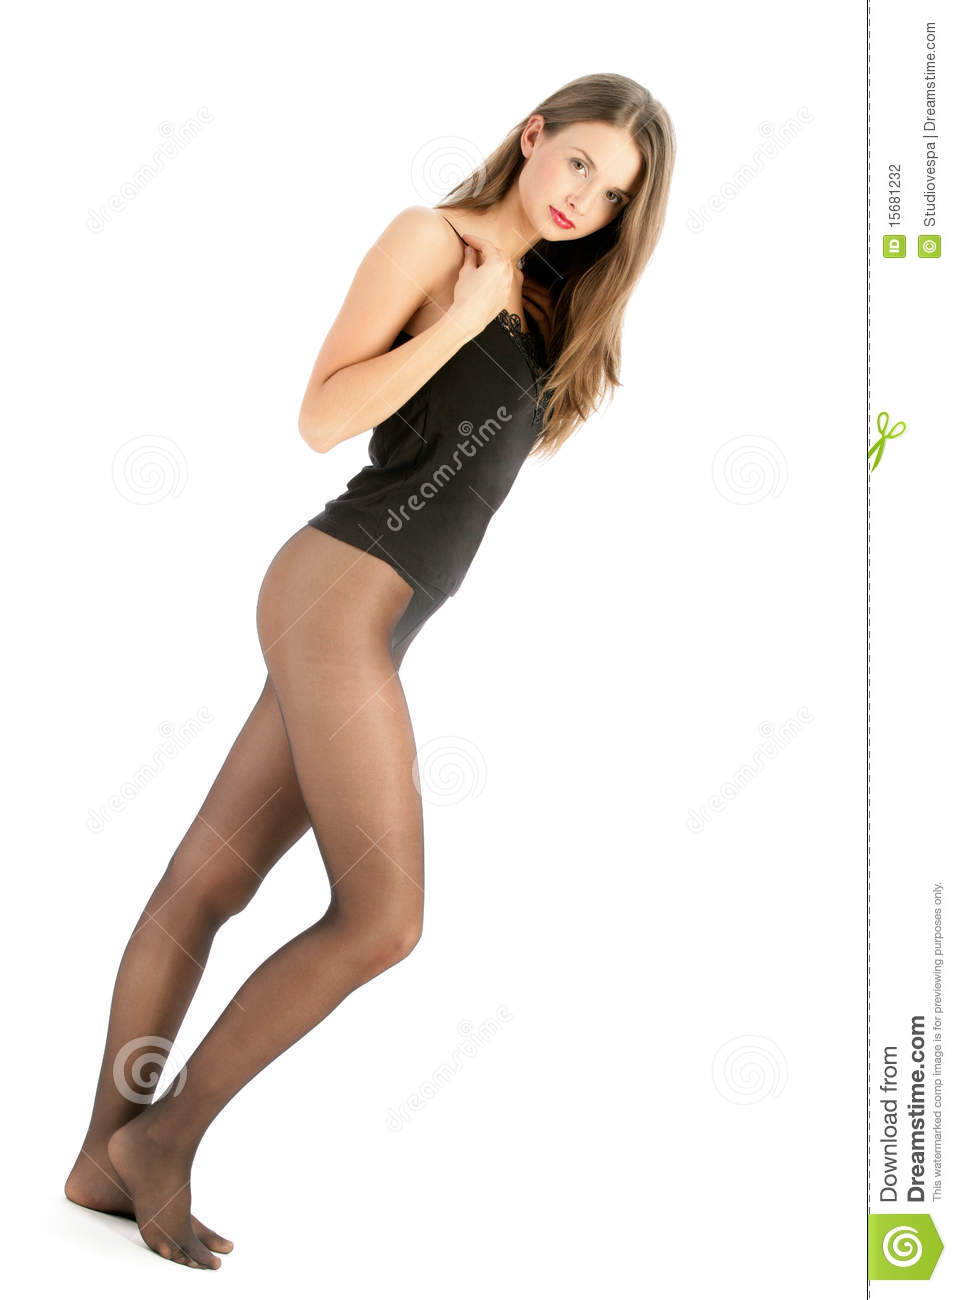 Women Wearing Pantyhose Women 62